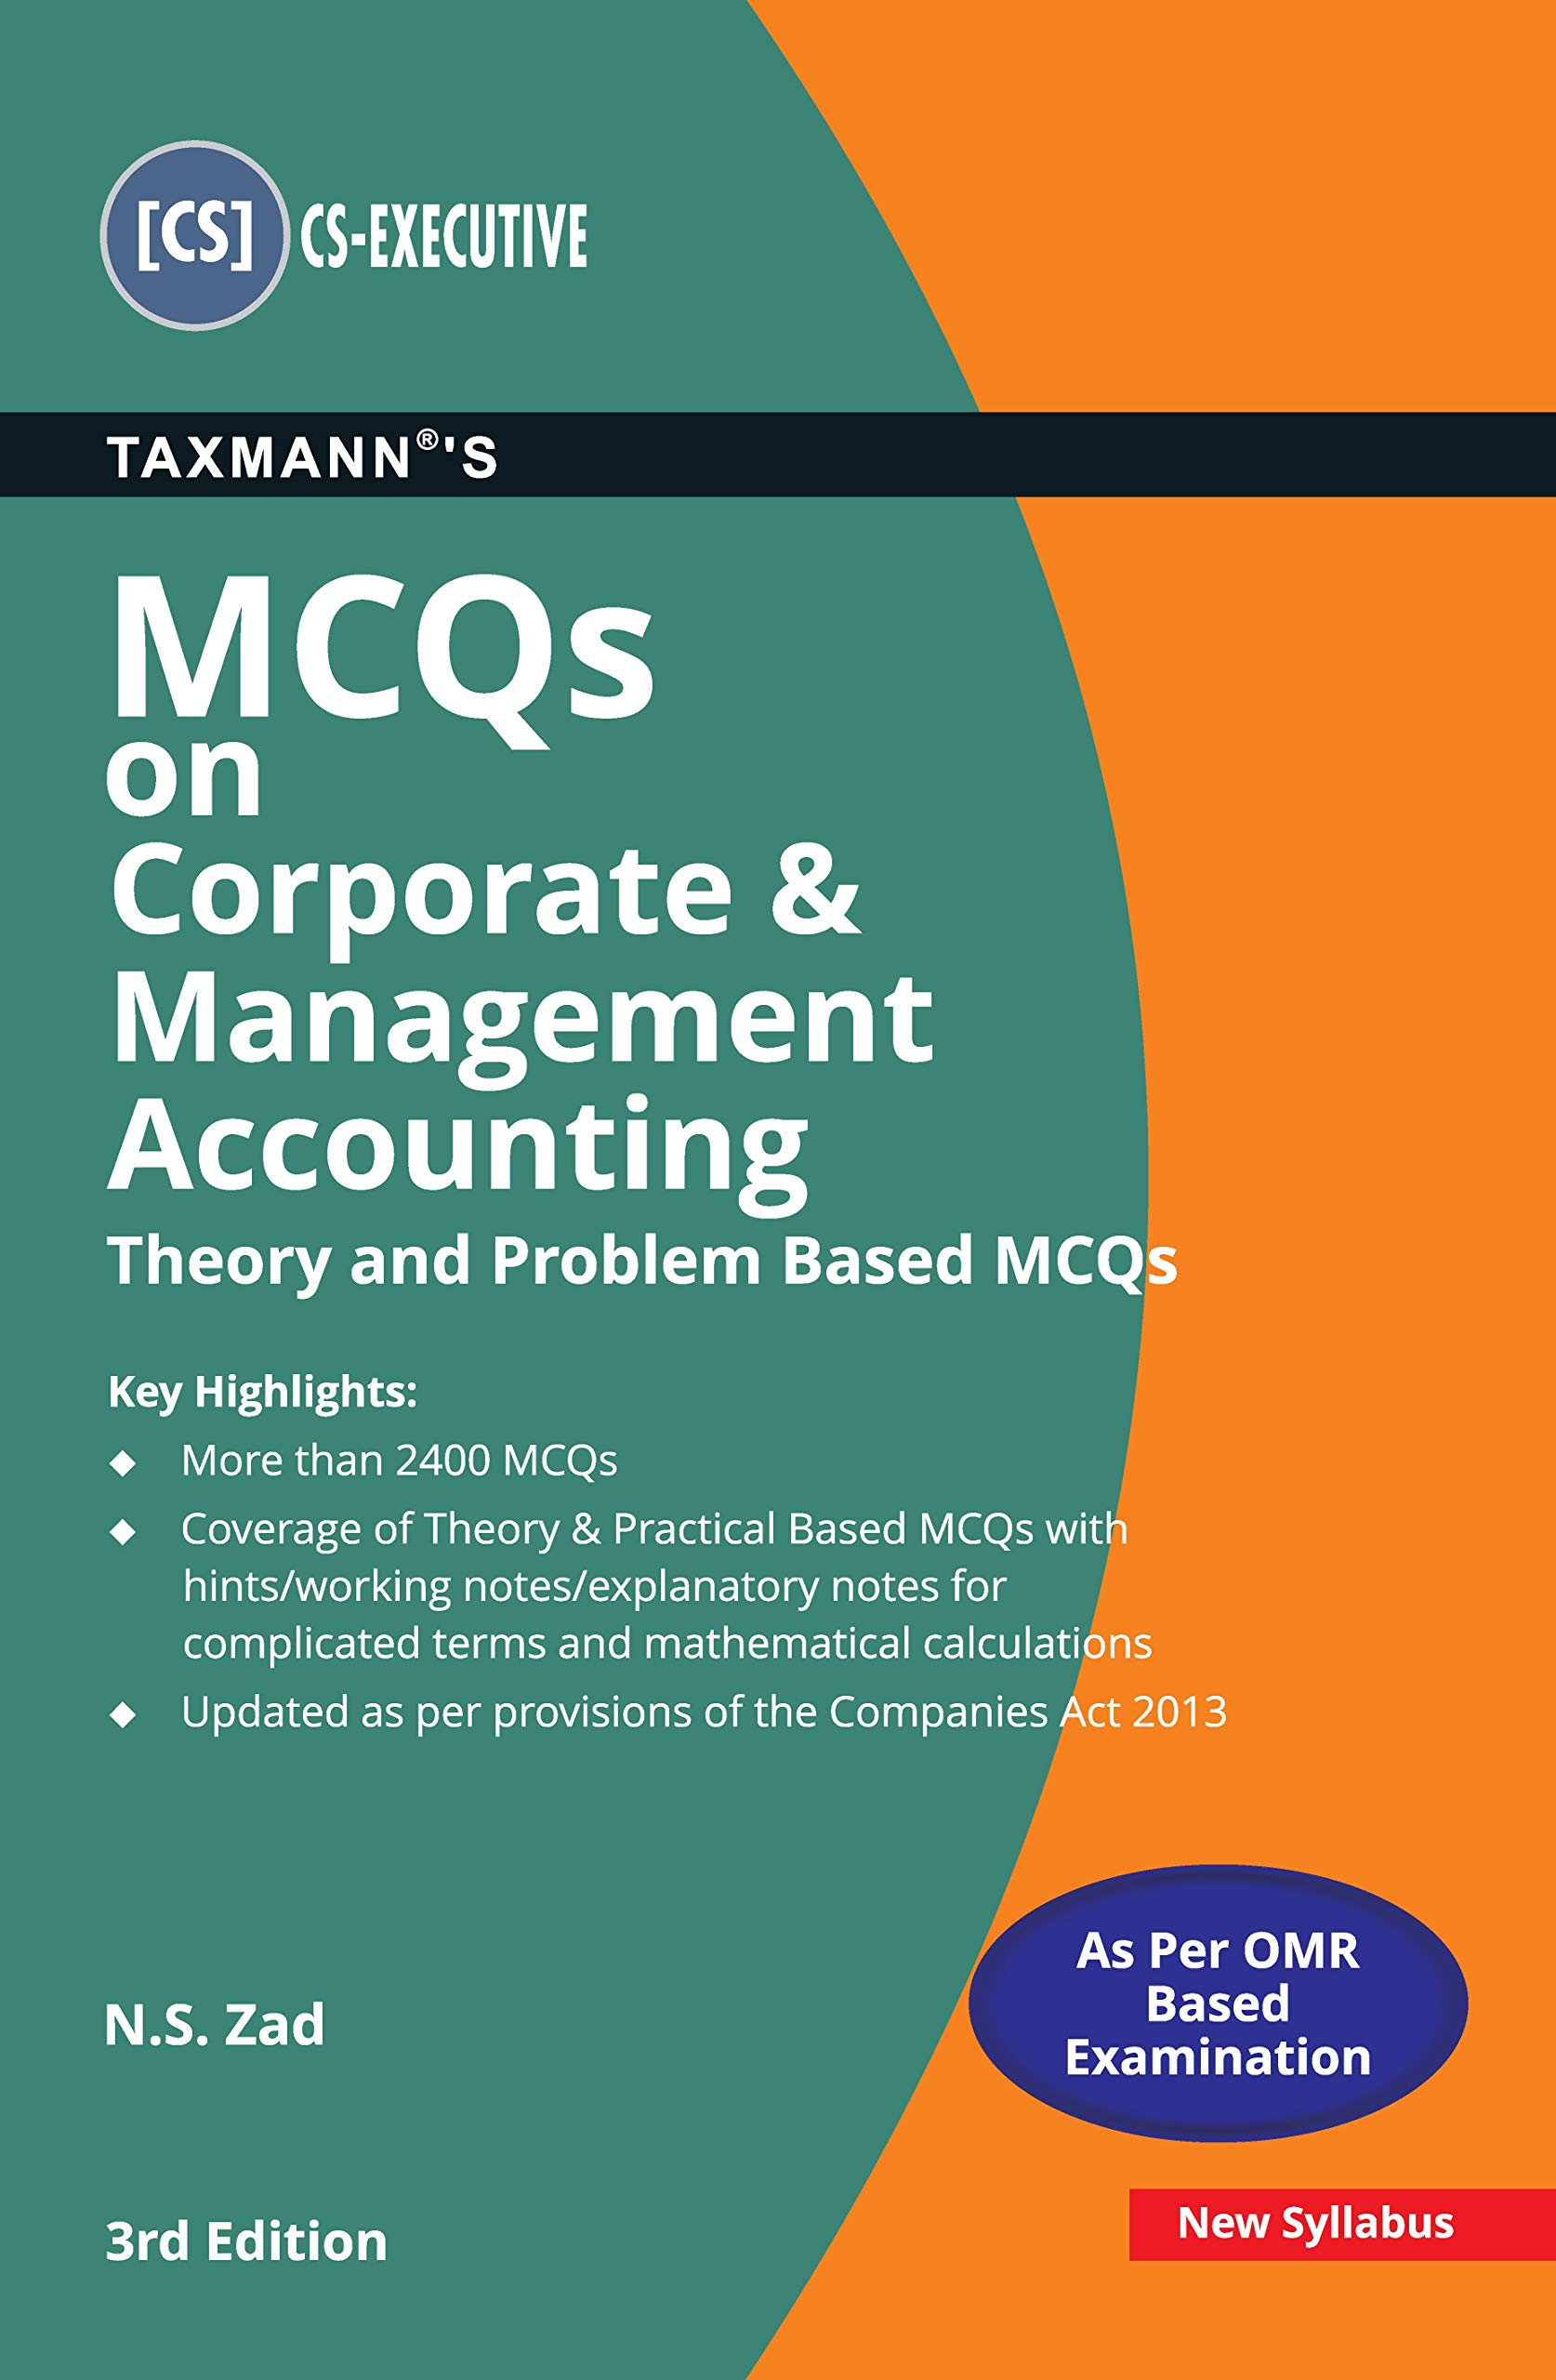 Taxmann's MCQs on Corporate & Management Accounting (Theory and Problem Based MCQs) | CS-Executive – New Syllabus | Updated till 30-11-2020 | 3rd Edition | January 2021